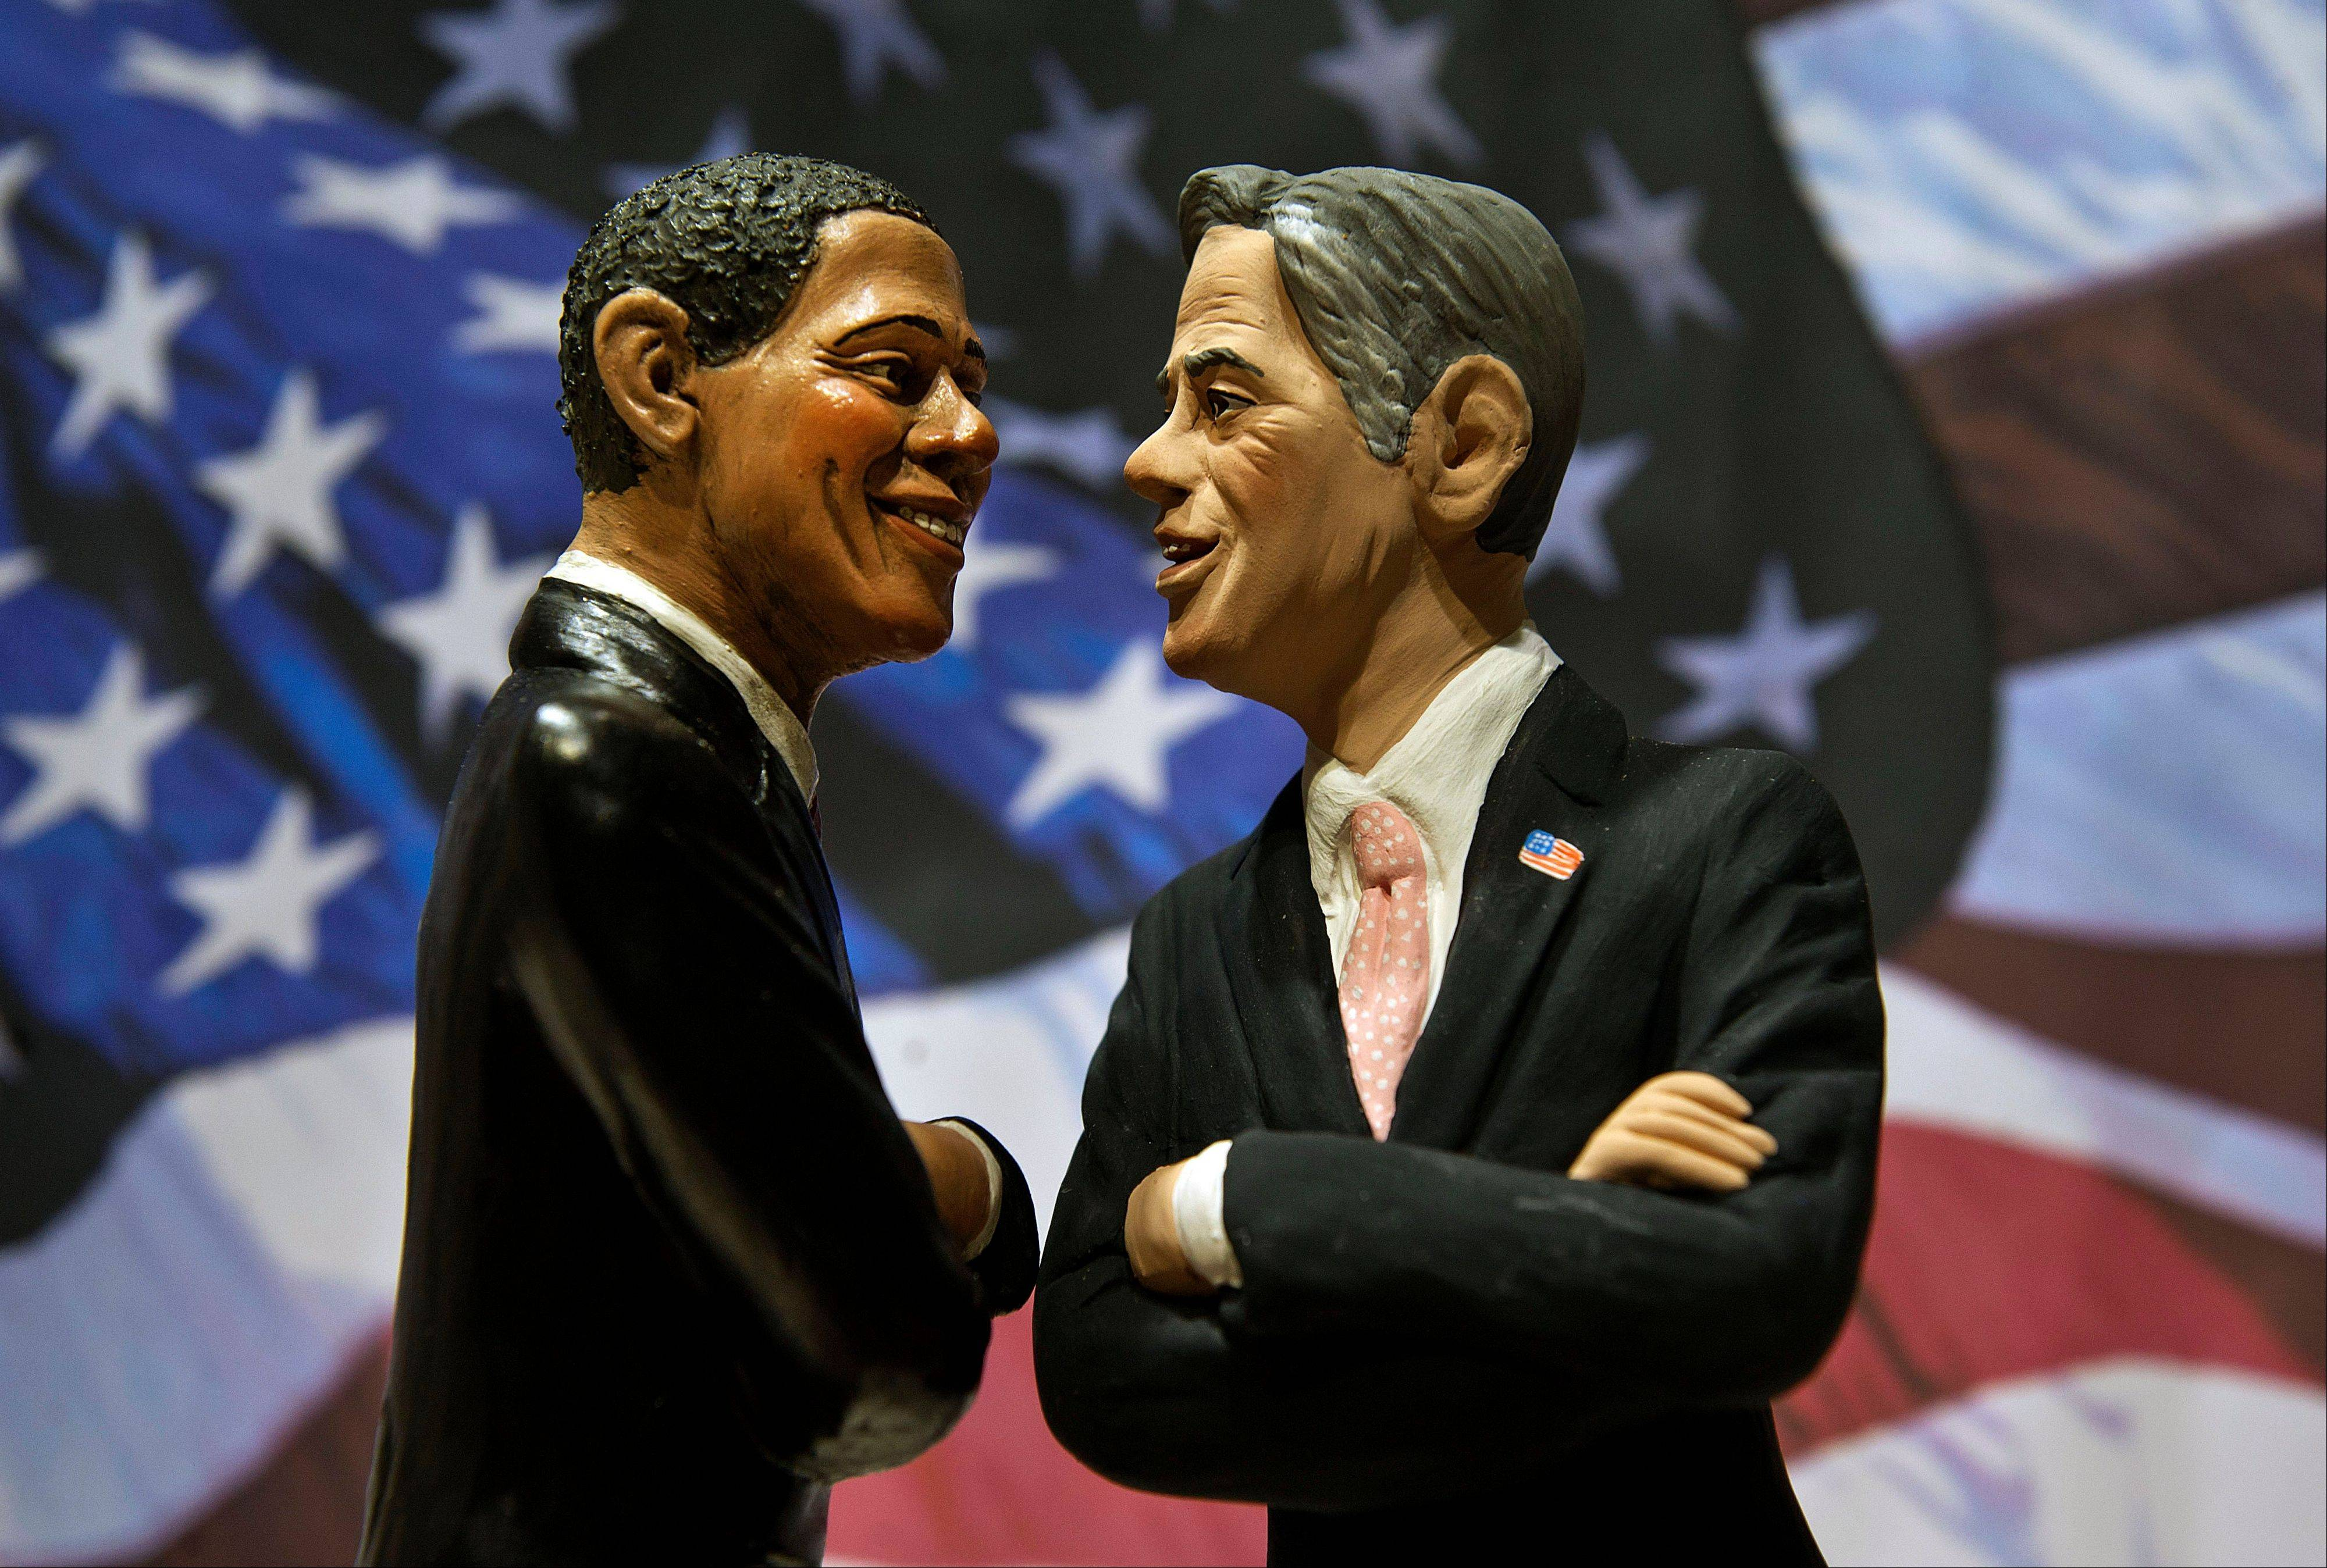 Statuettes depicting President Barack Obama, left, and Republican rival Mitt Romney are backdropped by the Stars and Stripes in a shop in Naples, Italy. Interest in the U.S. presidential election is high around the world.